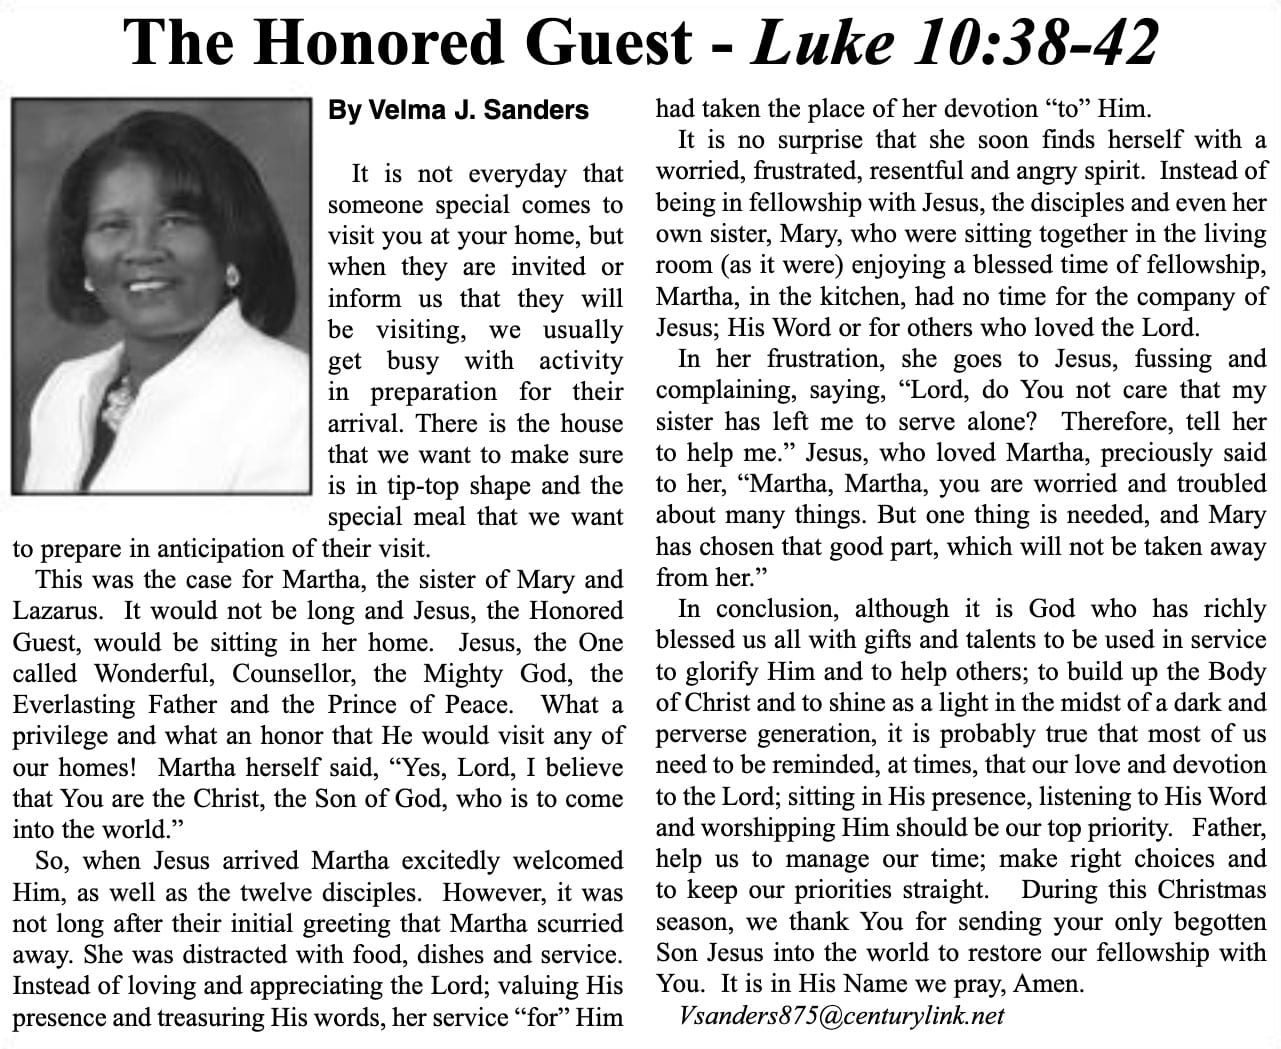 The Honored Guest article